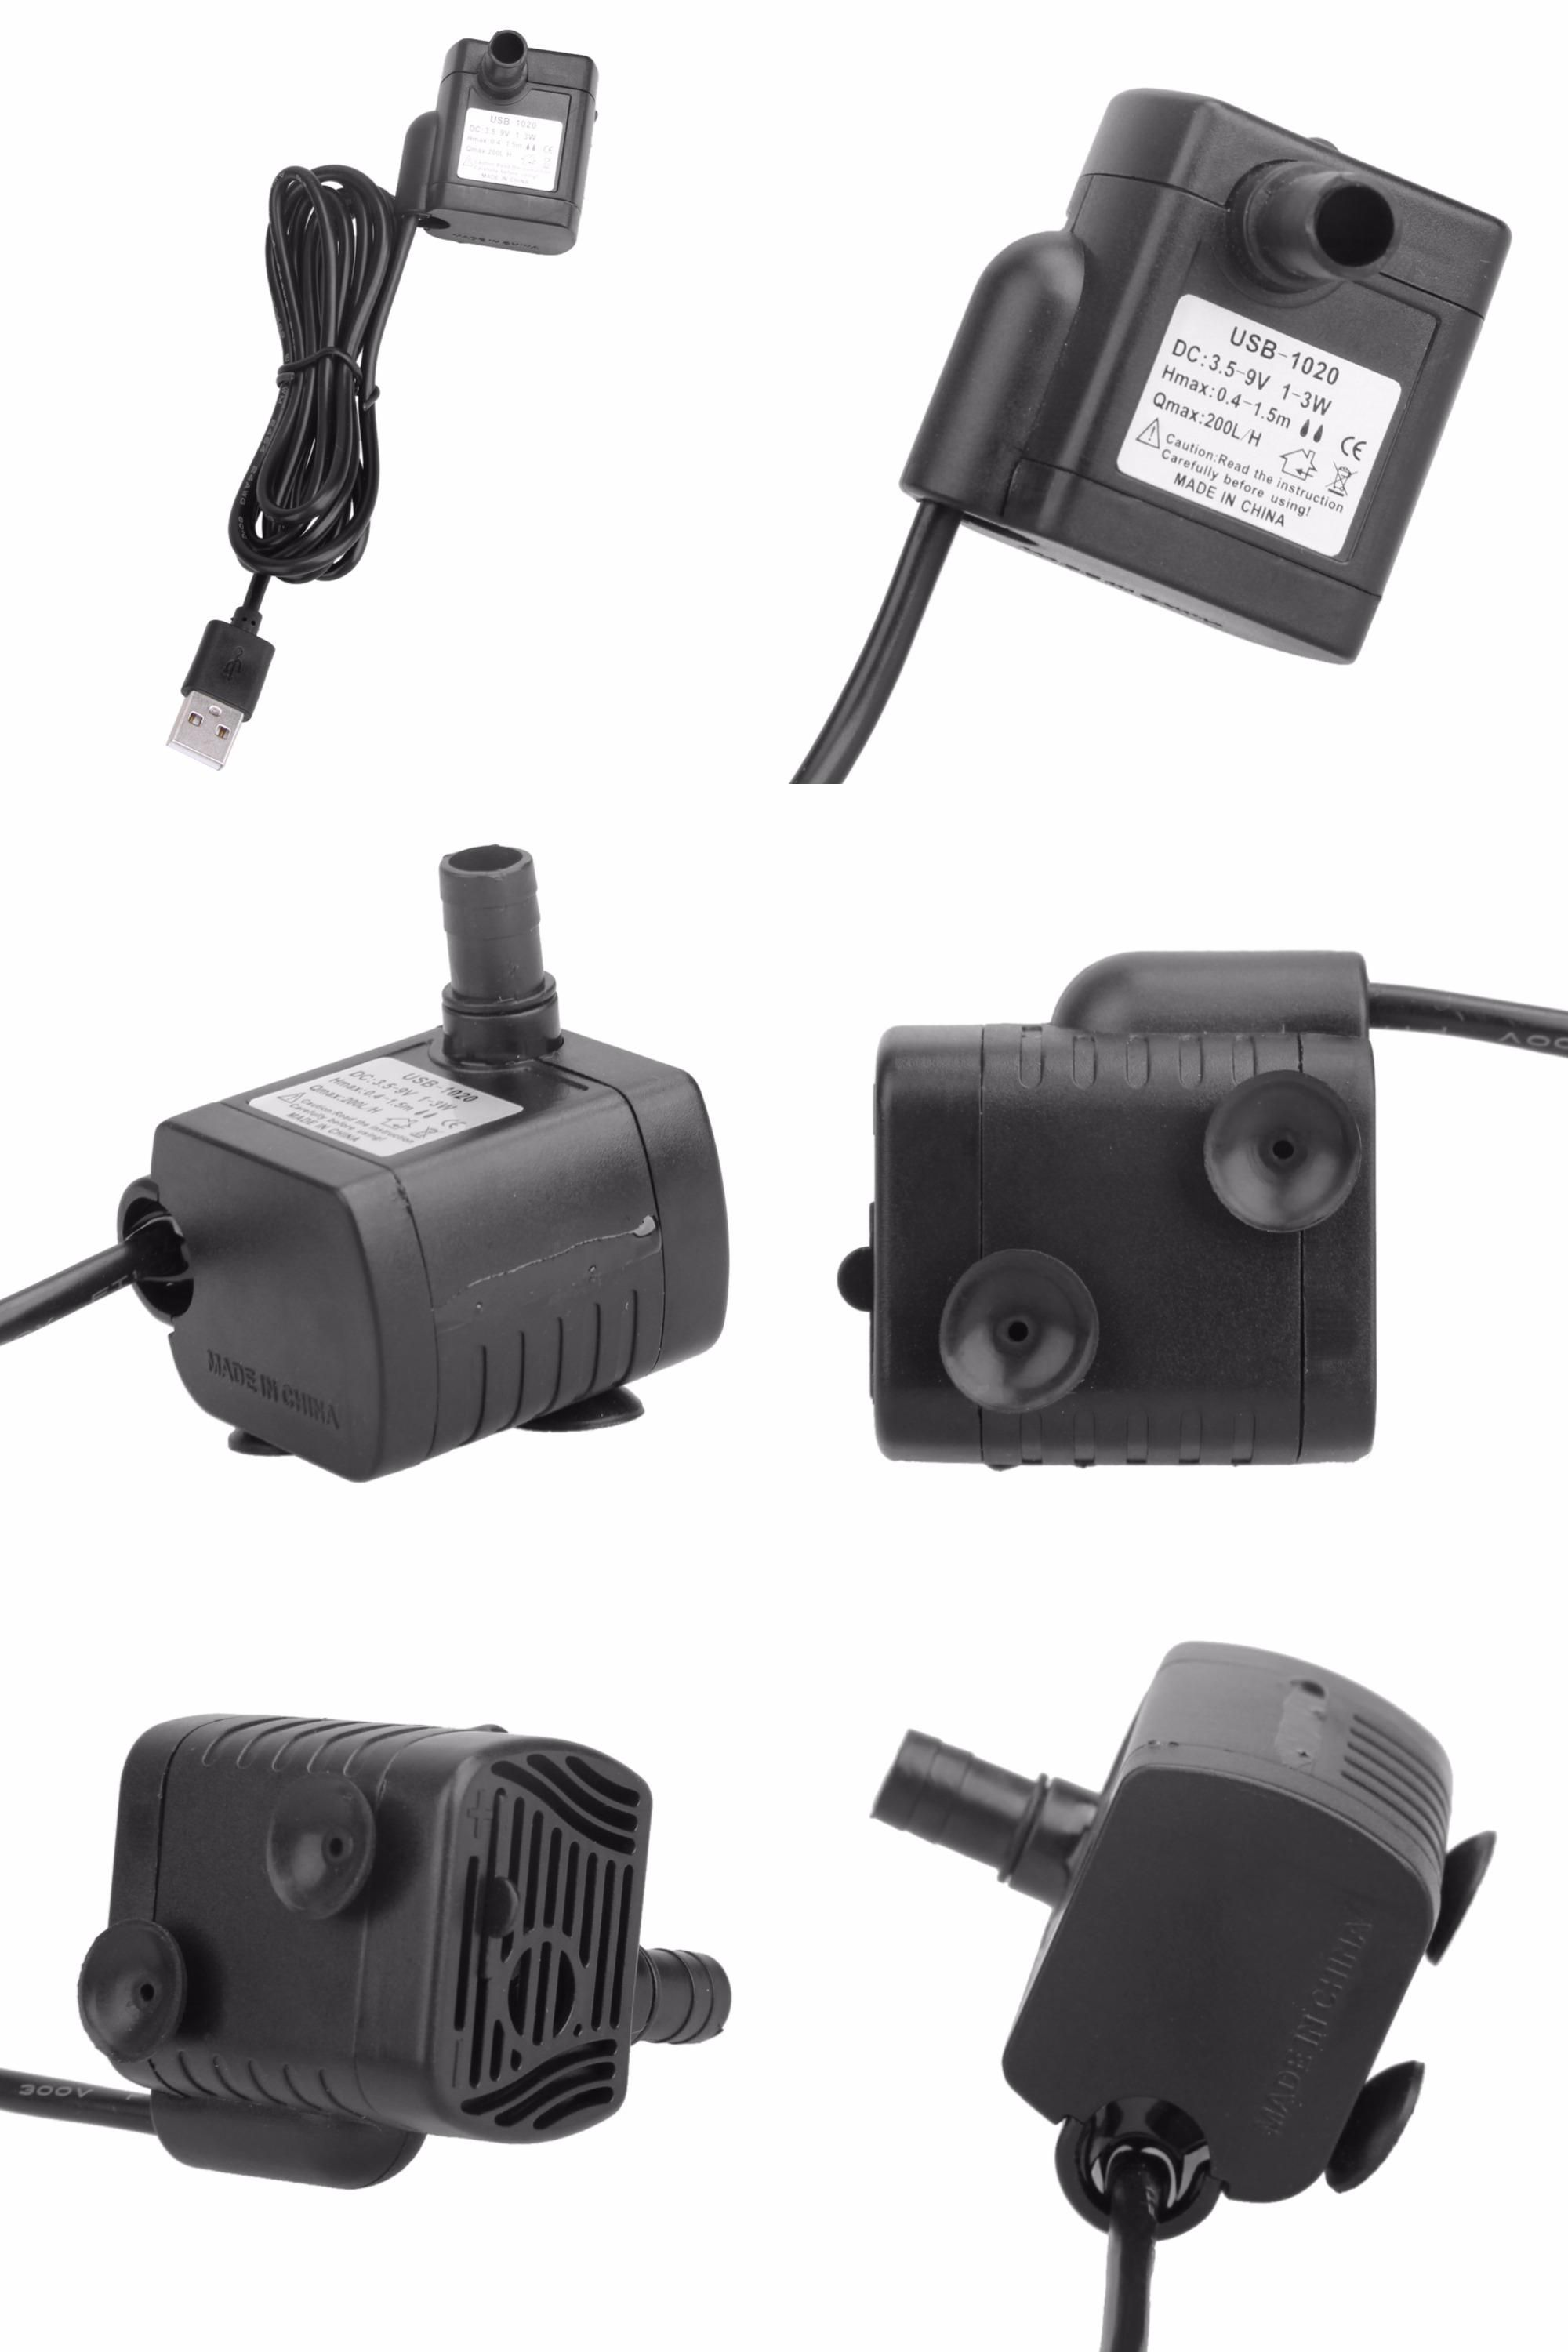 [Visit to Buy] DC 5.512V 3W USB Micro Submersible Water